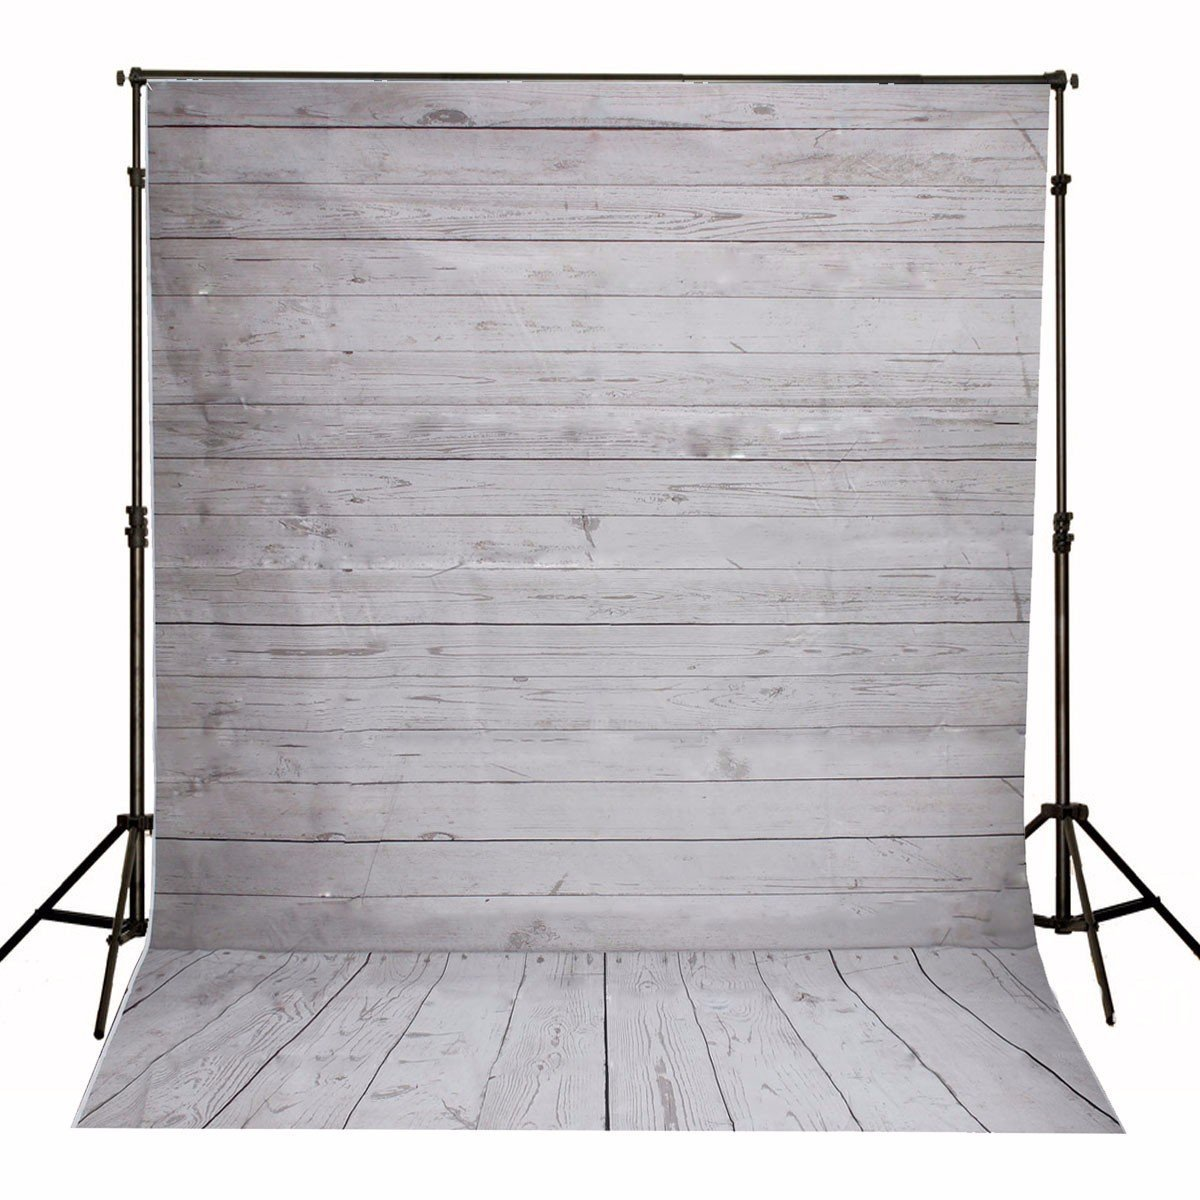 Photo Background 5x7ft Wood Wall Floor Studio Prop Photography Vinyl Background Camera Photo Backdrop Screen Cloth 2.1x1.5m